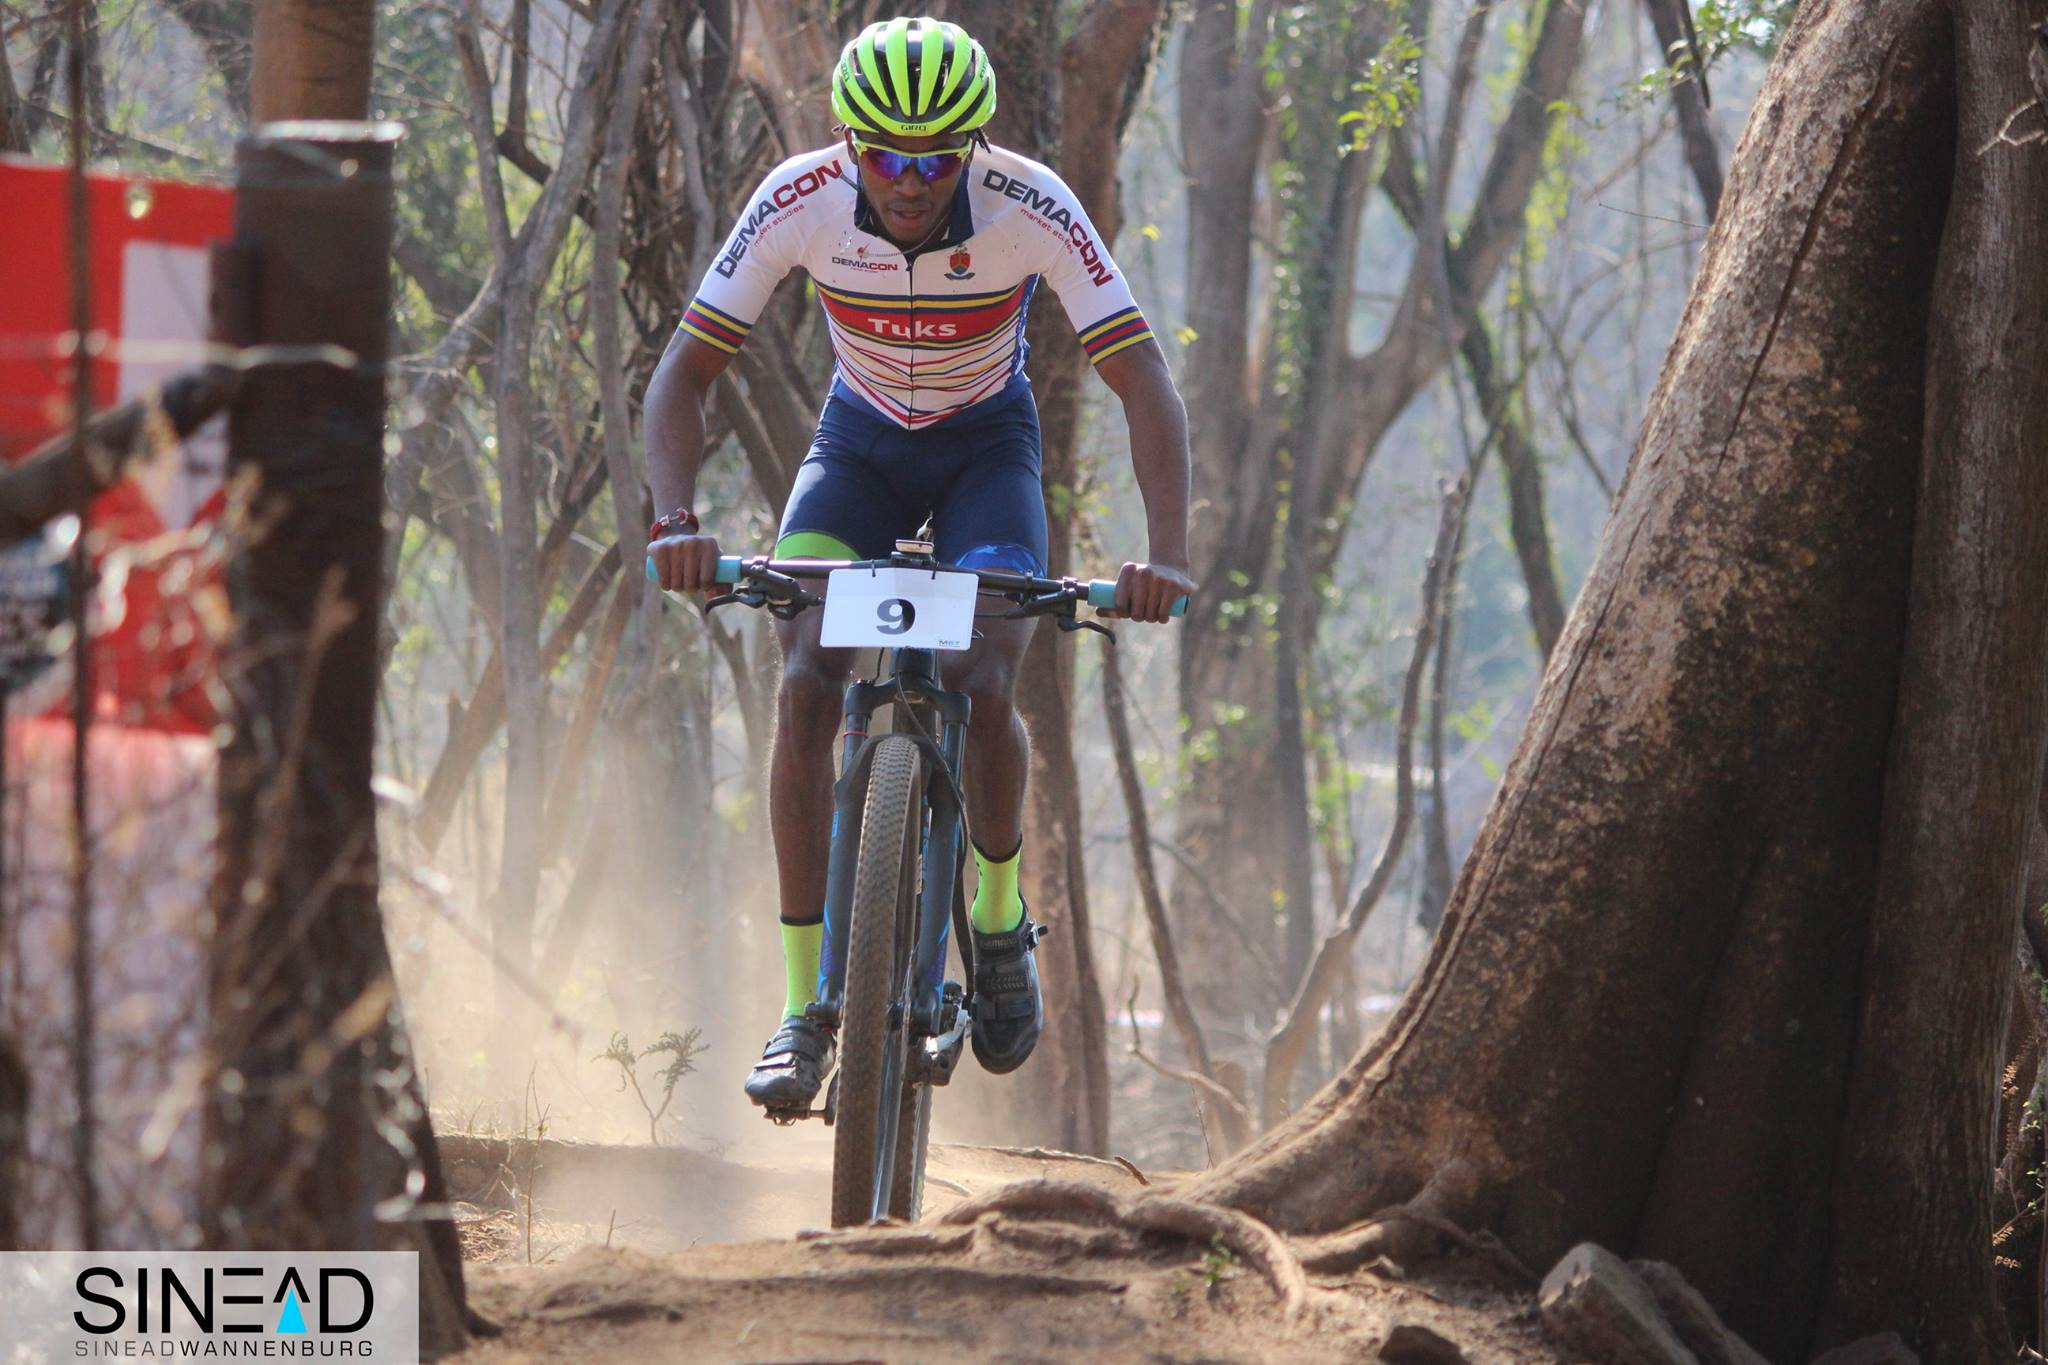 Mokgopo spreads inspiration on and off the bike